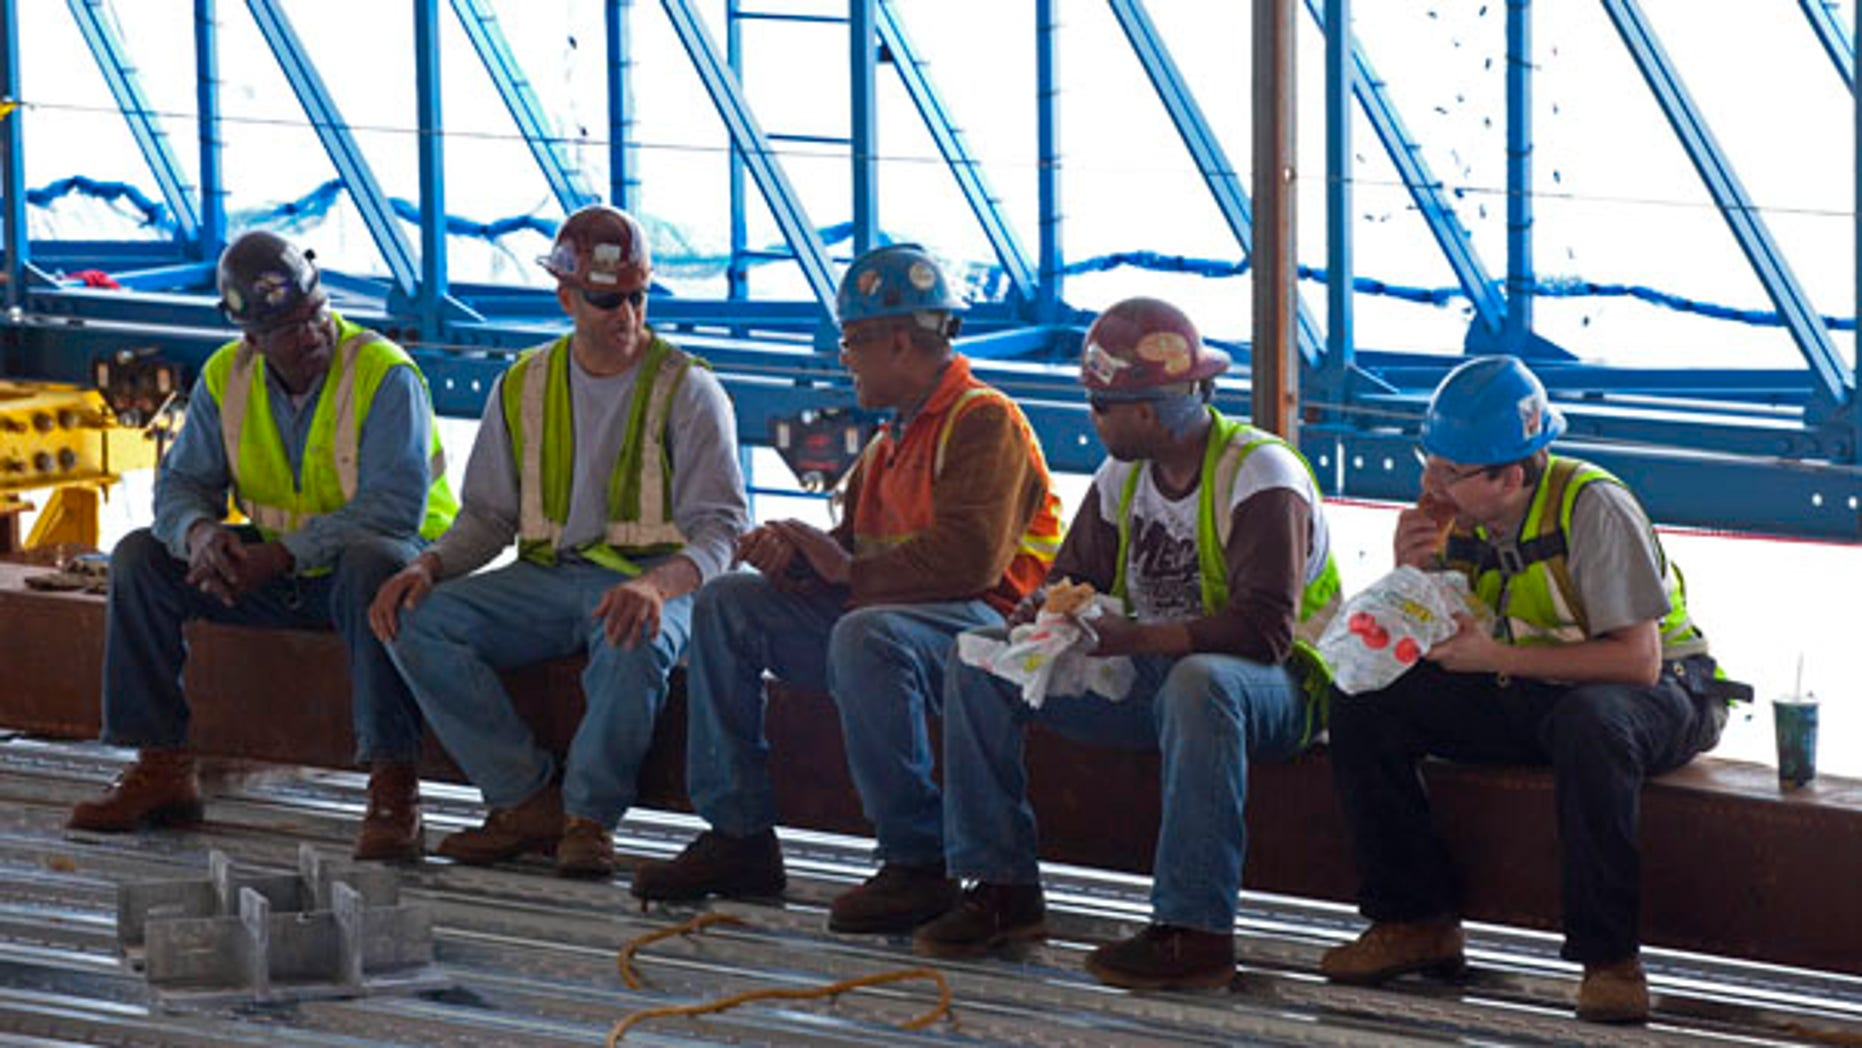 June 18: Construction workers take a lunch break inside the rising structure of One World Trade Center in New York. A Subway sandwich shop is serving workers atop the Ground Zero scaffolding that will become Freedom Tower. The eatery, built out of shipping containers, is rising along with the signature skyscraper with the help of a hydraulically powered platform.